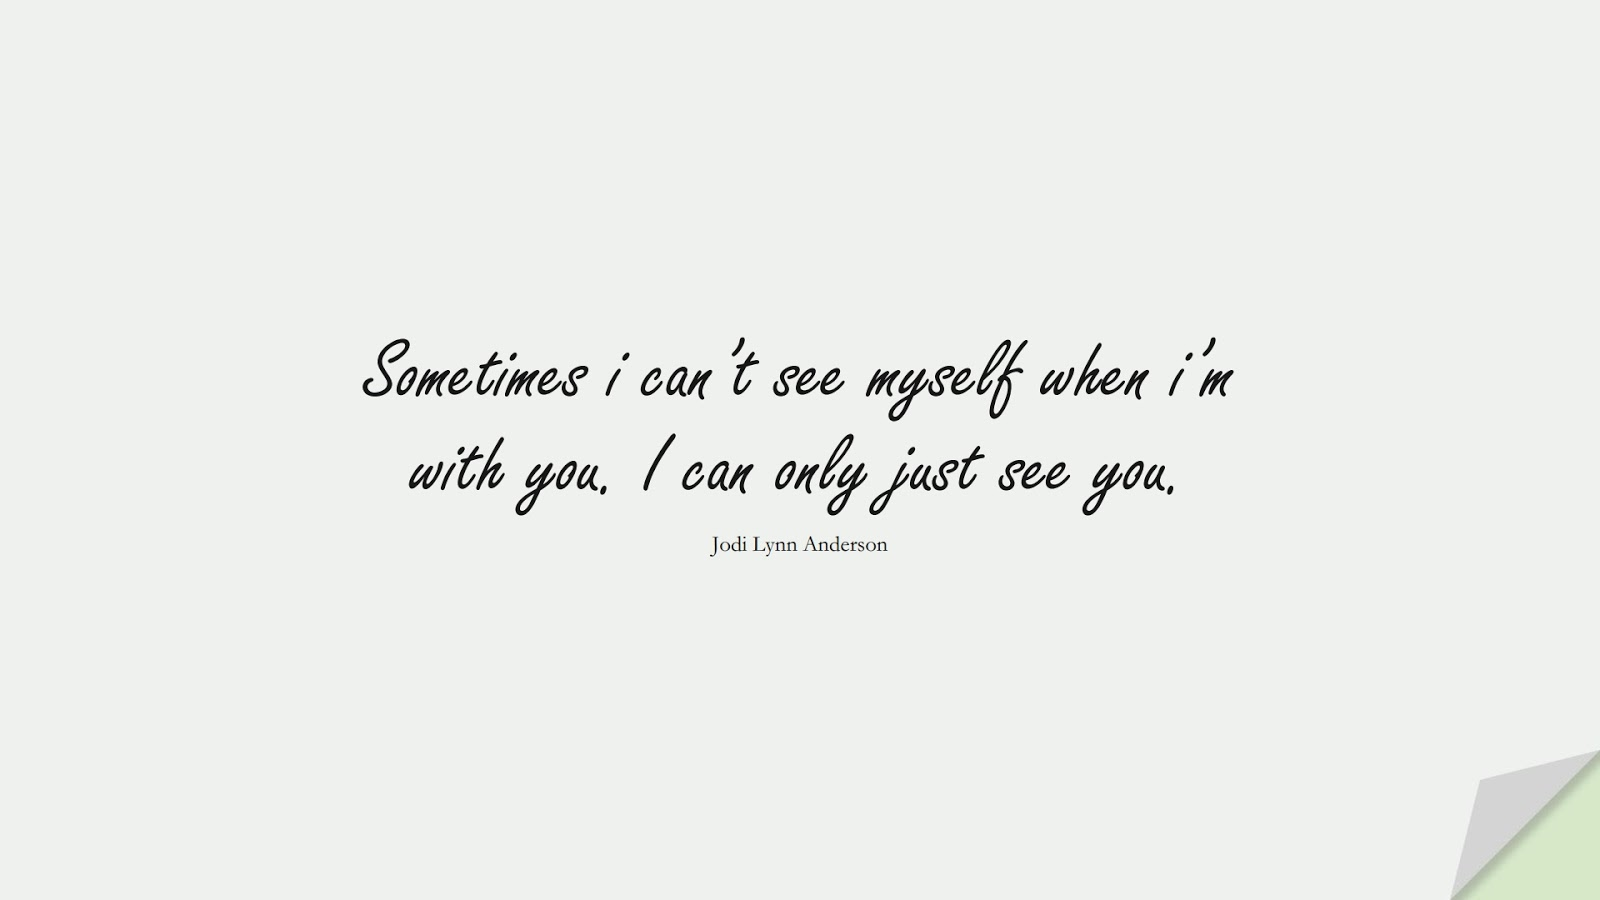 Sometimes i can't see myself when i'm with you. I can only just see you. (Jodi Lynn Anderson);  #LoveQuotes